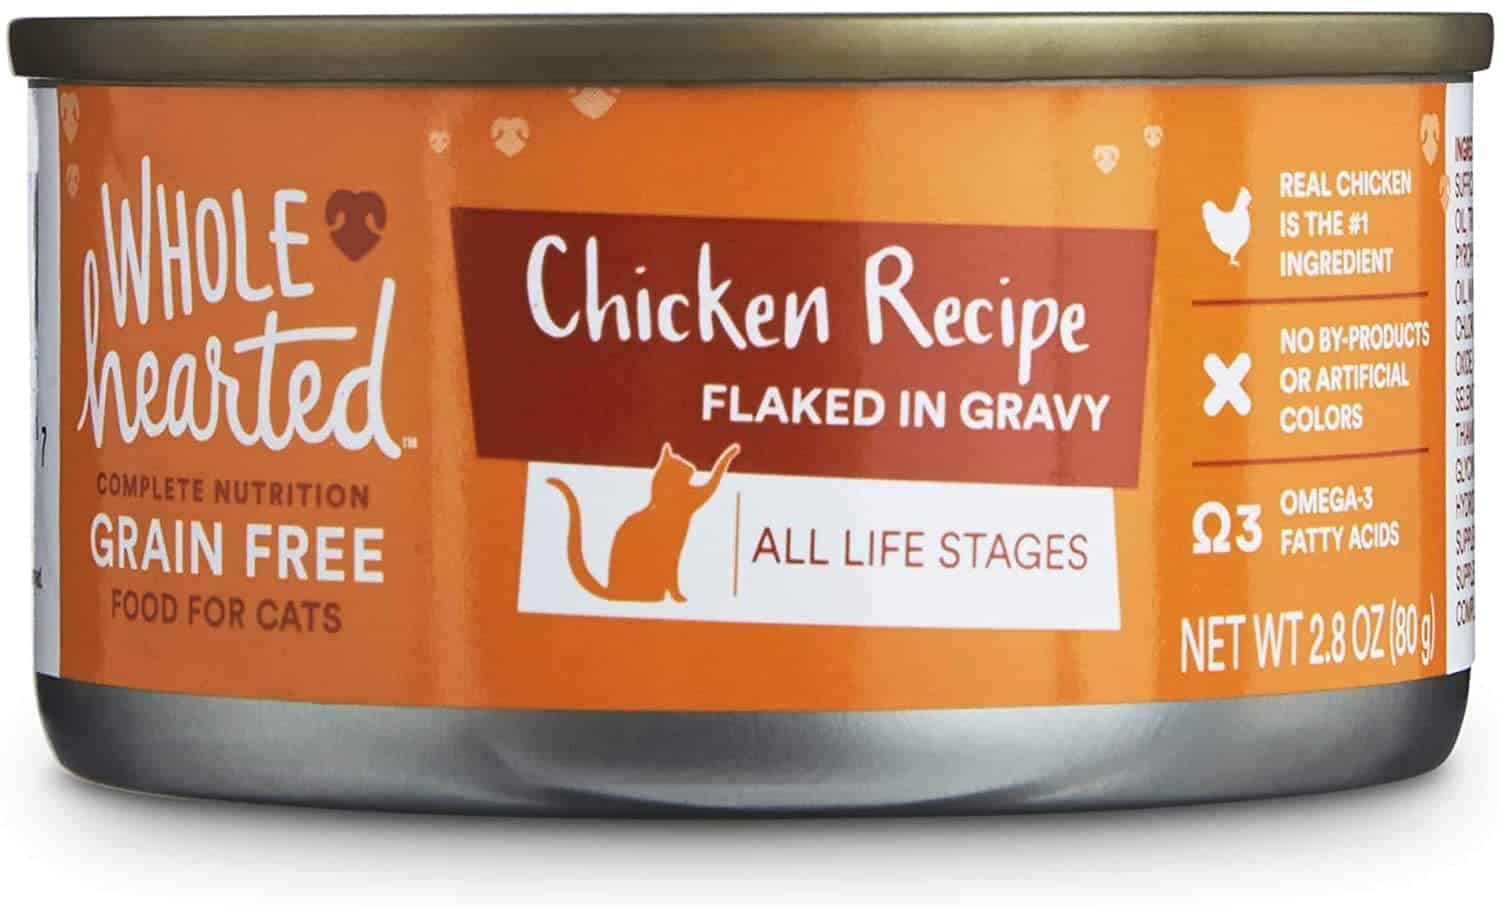 WholeHearted Cat Food Review 2021: Good Quality, Affordable Cat Food 5